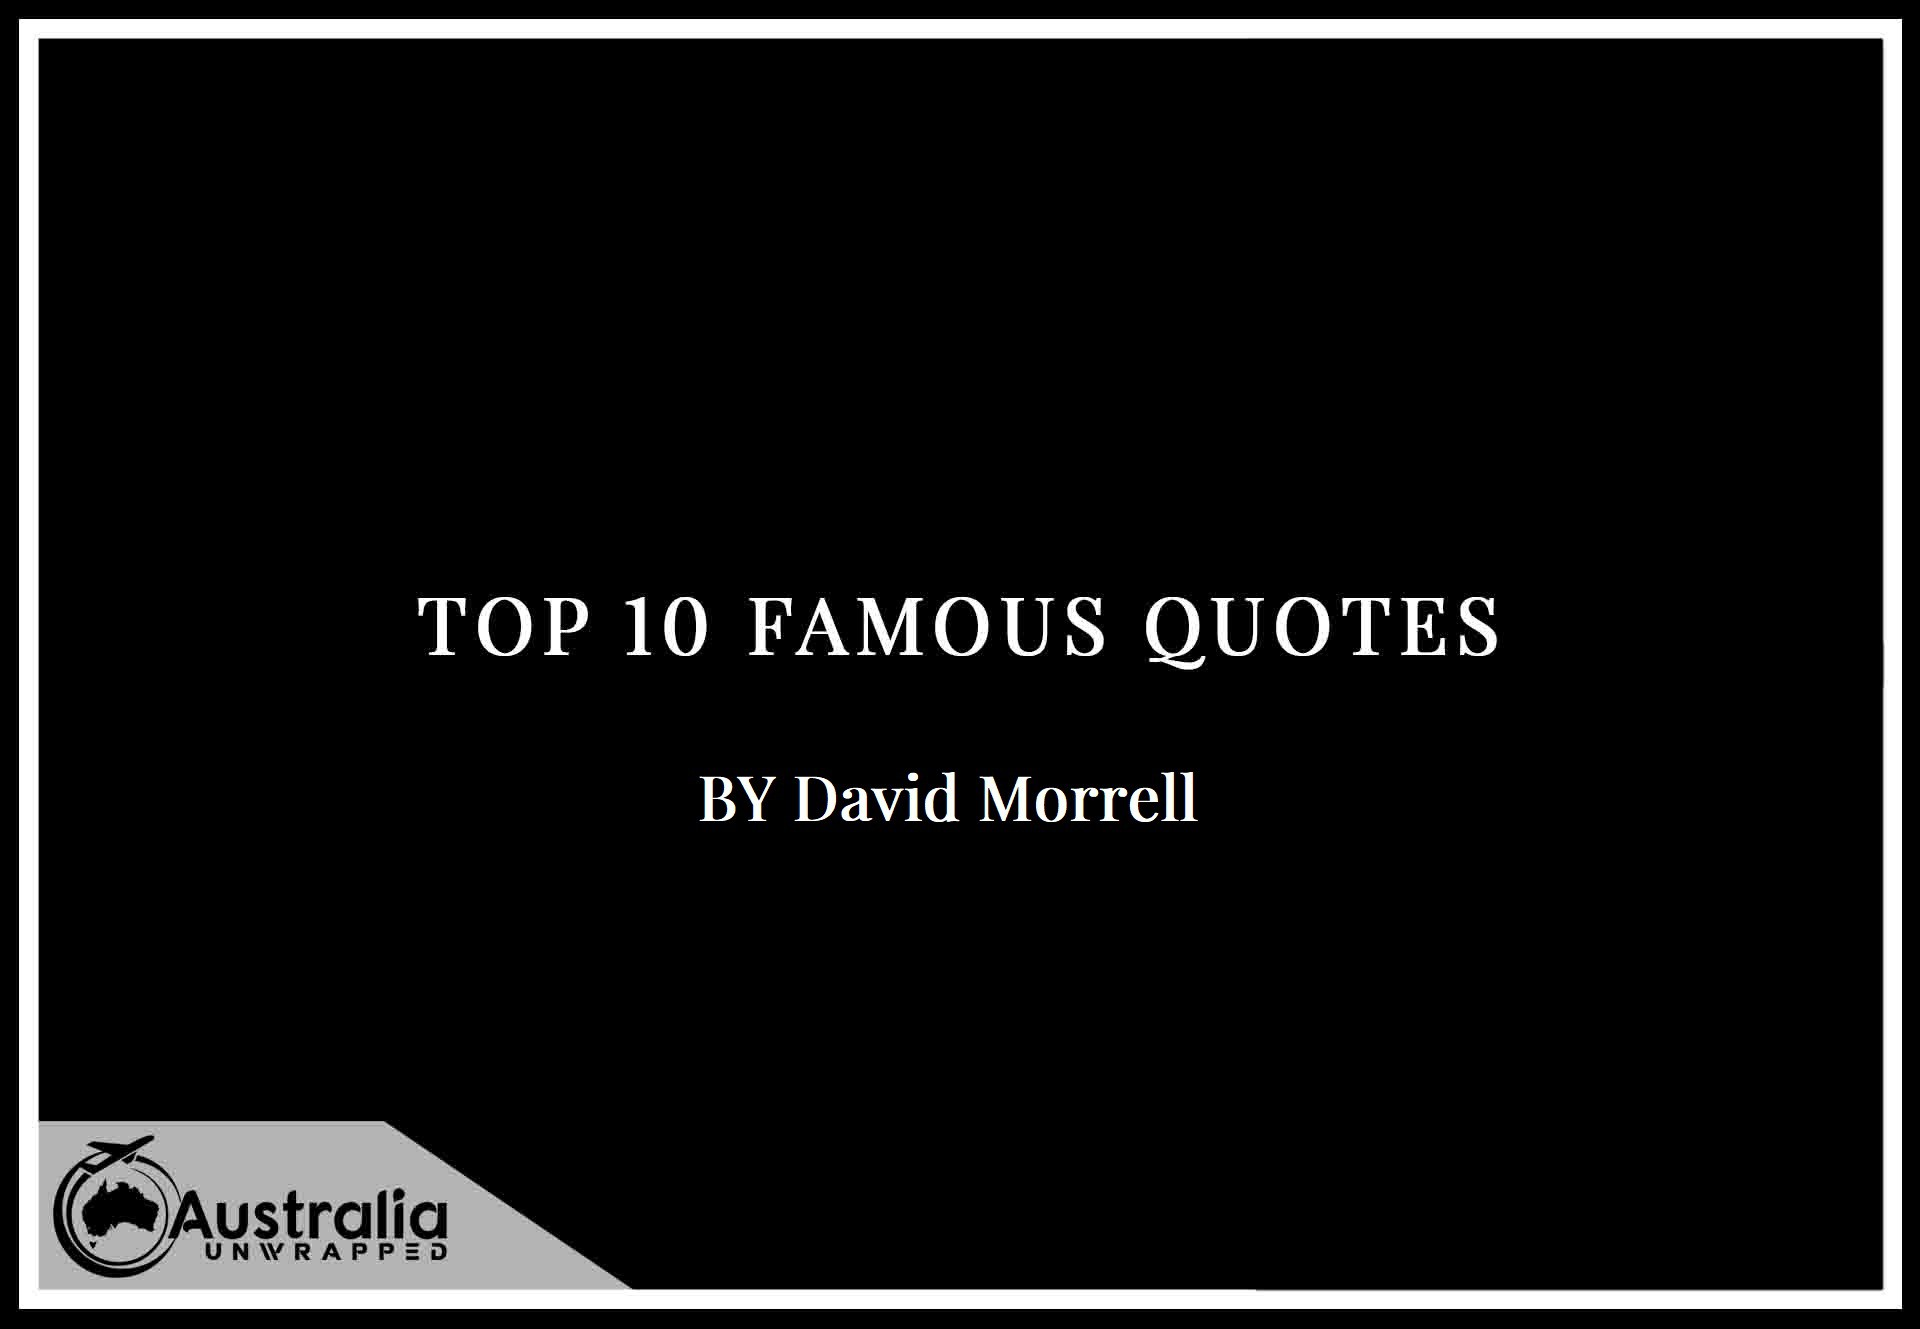 Top 10 Famous Quotes by Author David Morrell